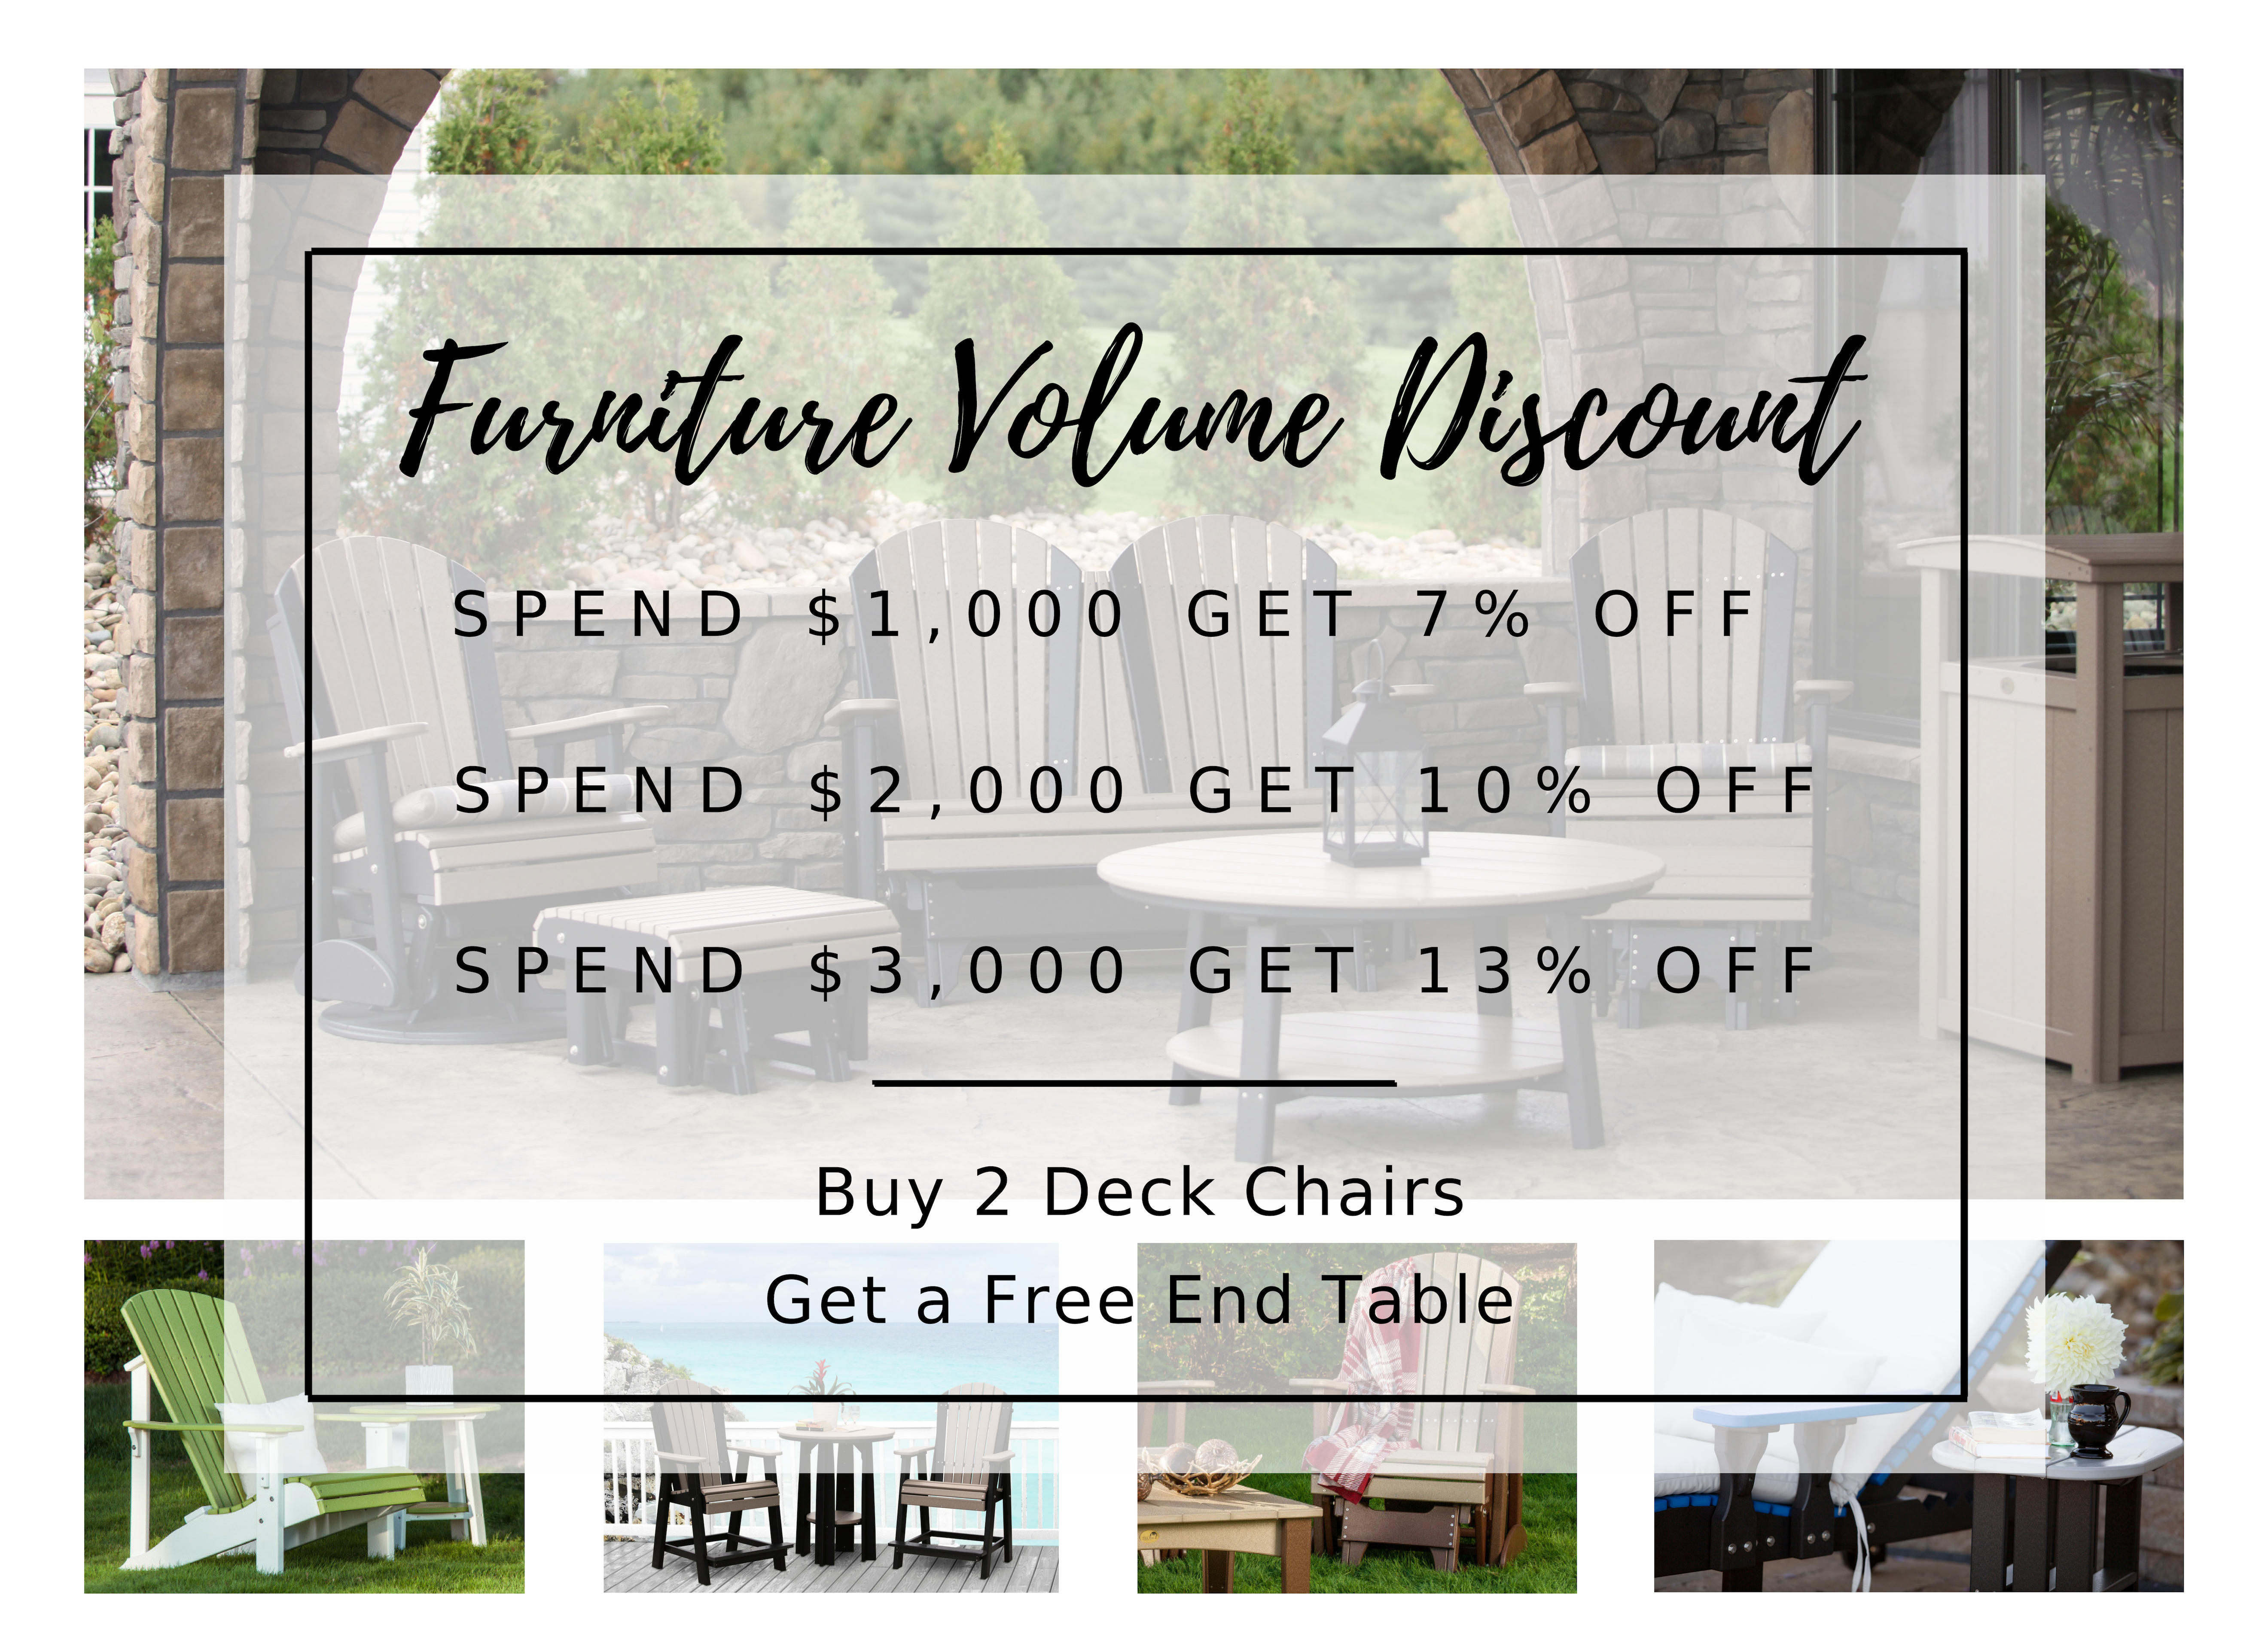 Furniture Volume Discount